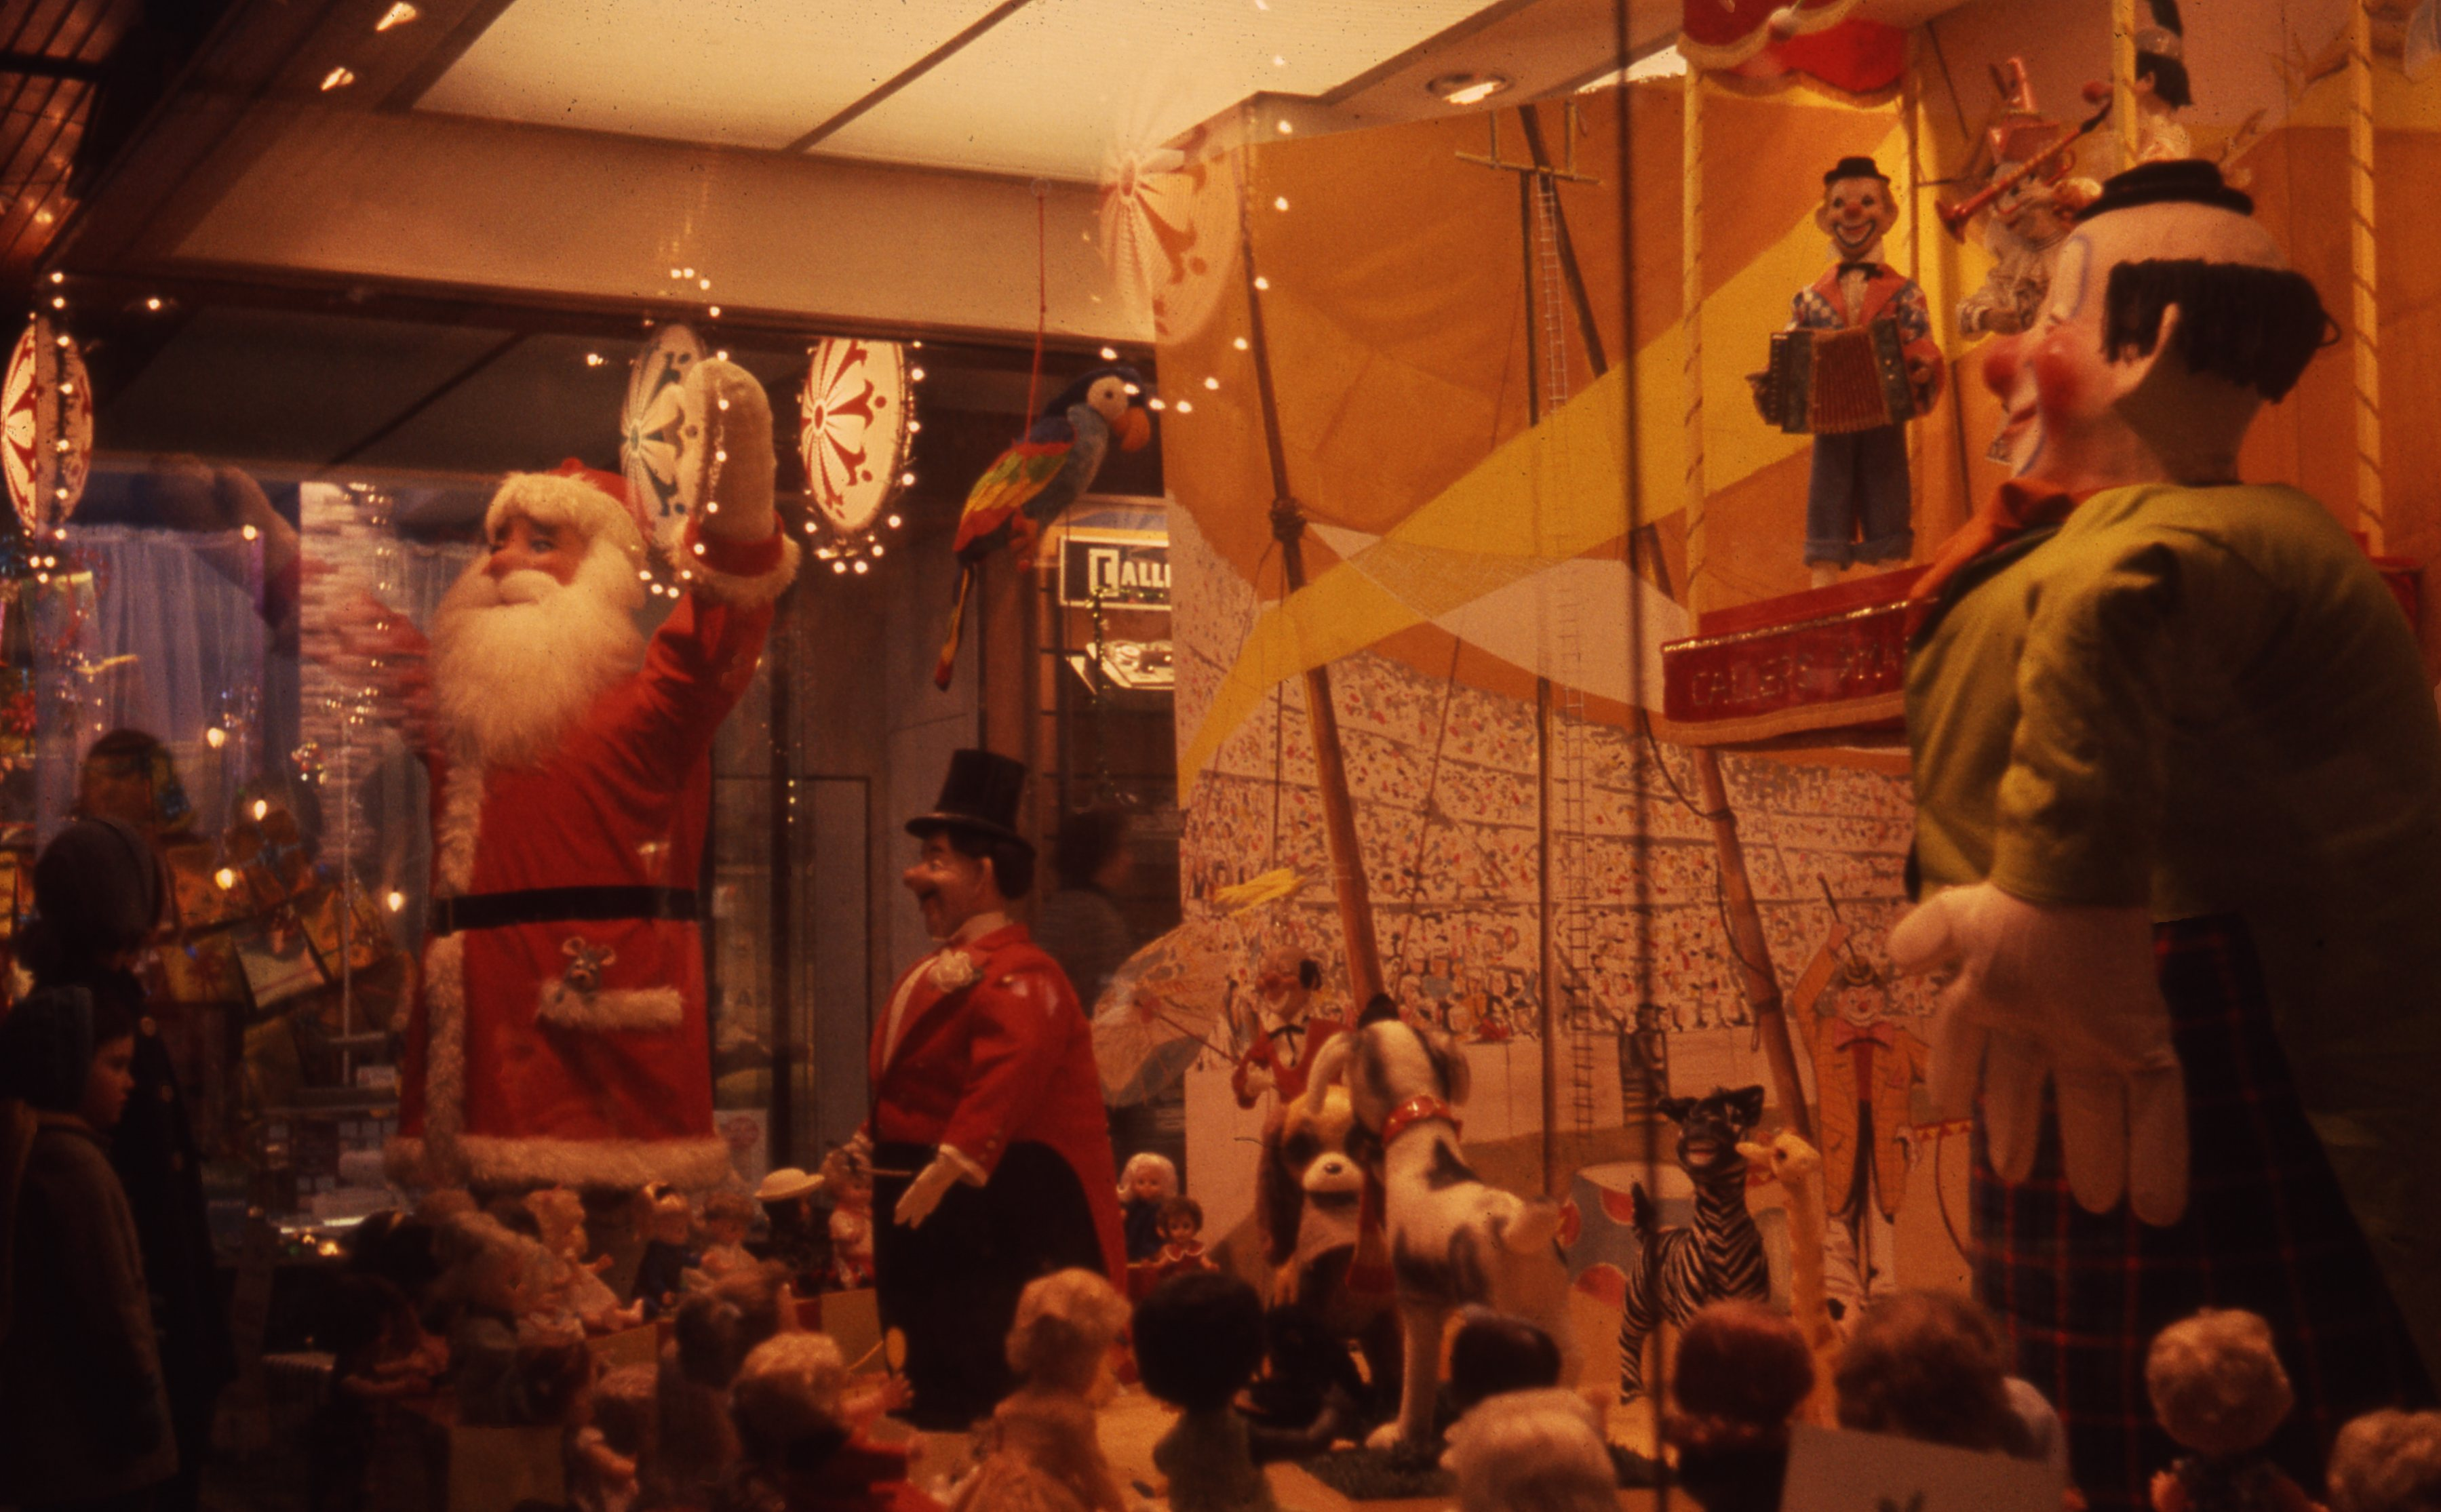 Here is a festive circus scene featuring Father Christmas at Callers department store, Newcastle upon Tyne. This is a 35mm slide. It was taken in 1964.